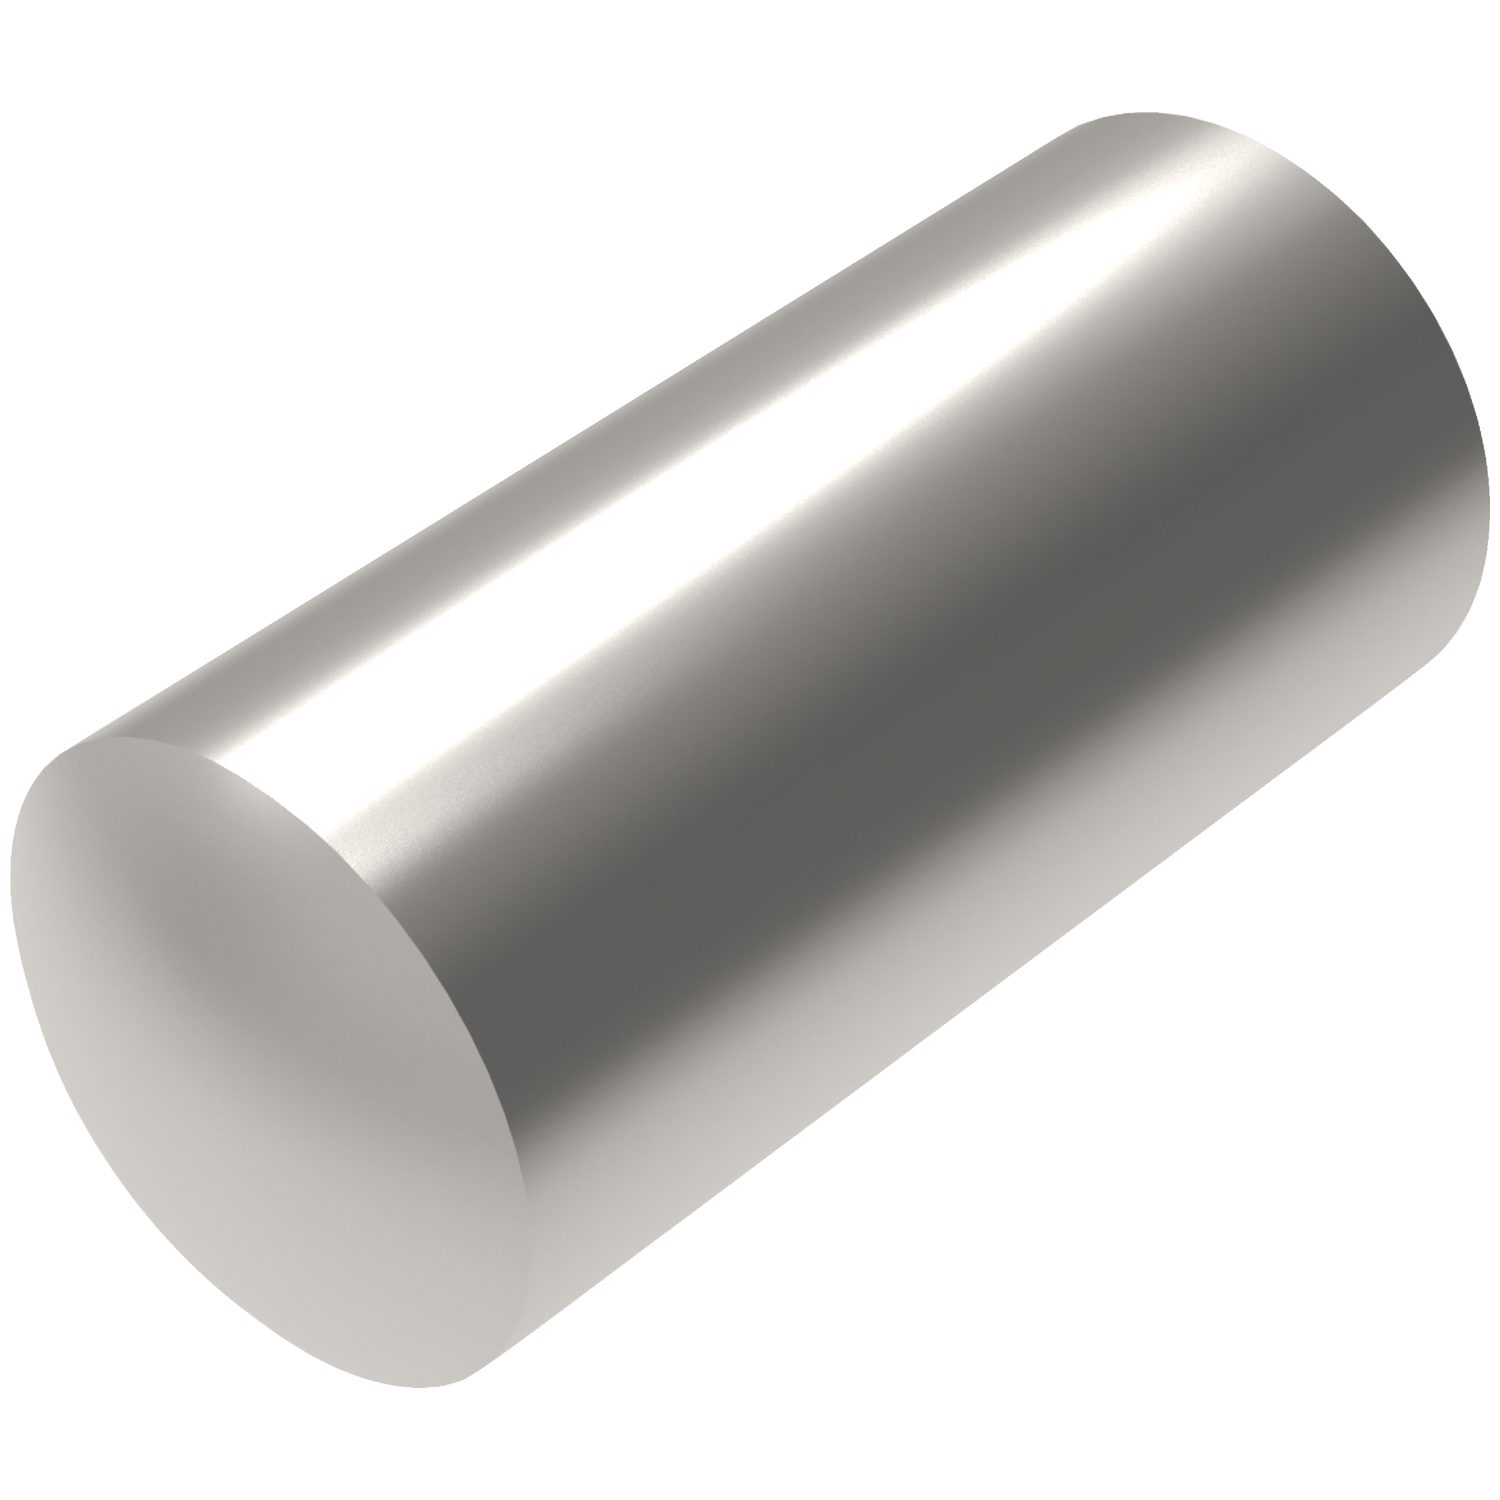 Stainless Dowel Pins A4 stainless steel dowel pins manufactured to DIN 7. A4 is a softer material than A2 but more resistant to corrosion.